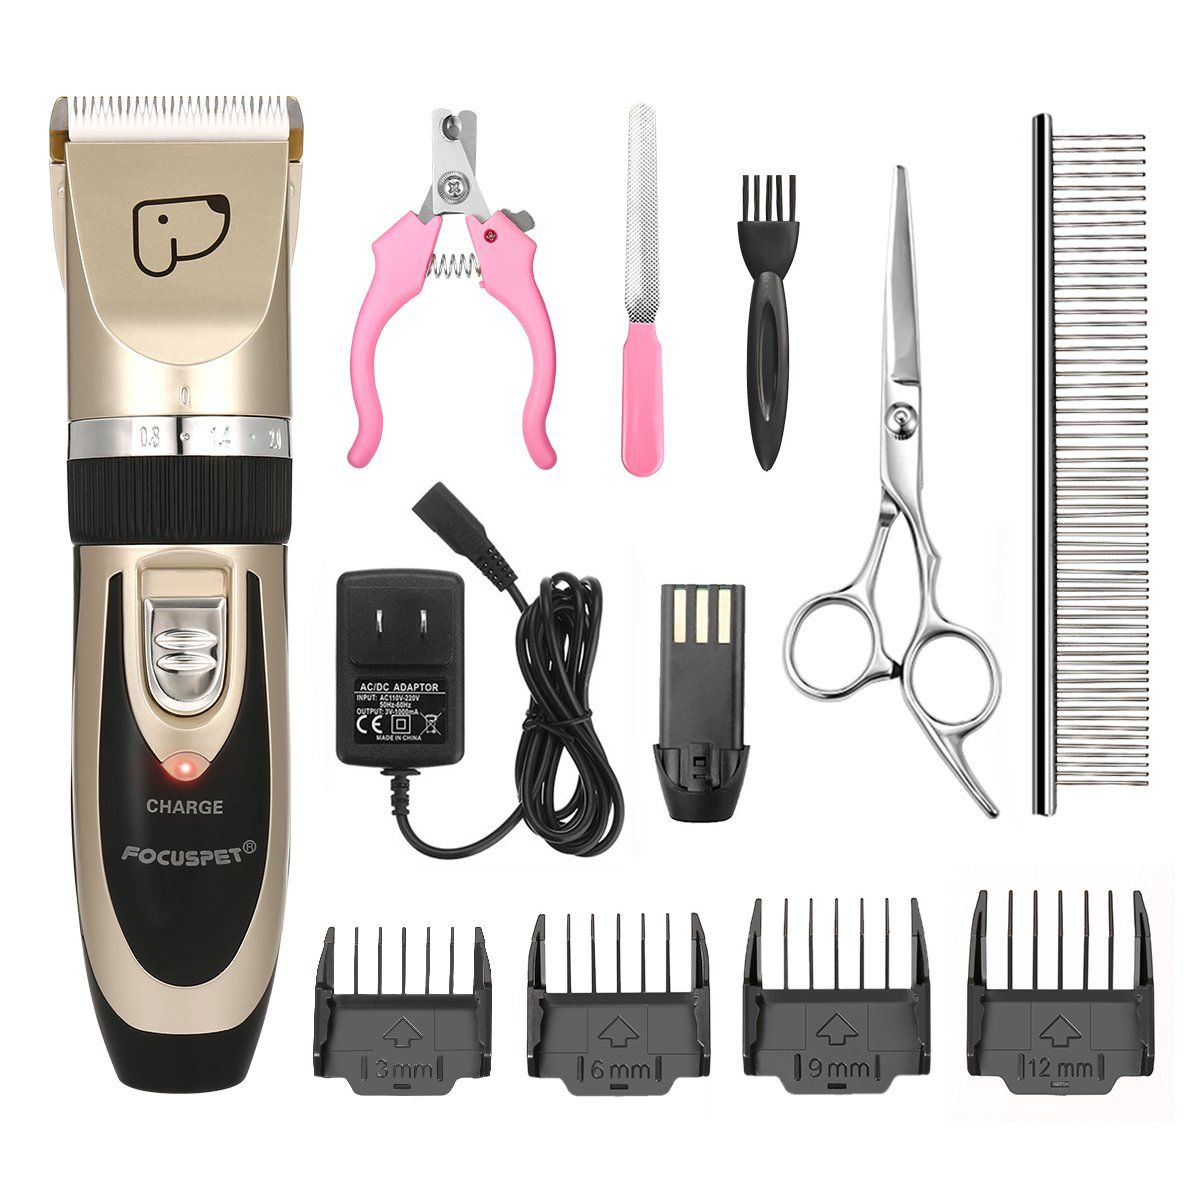 Focuspet Dog Grooming Clippersprofessional Dog Hair Trimmer Rechargeable Pet Shaver Cordless Silent Pet Grooming Kit With 4 C Dog Grooming Clippers Grooming Kit